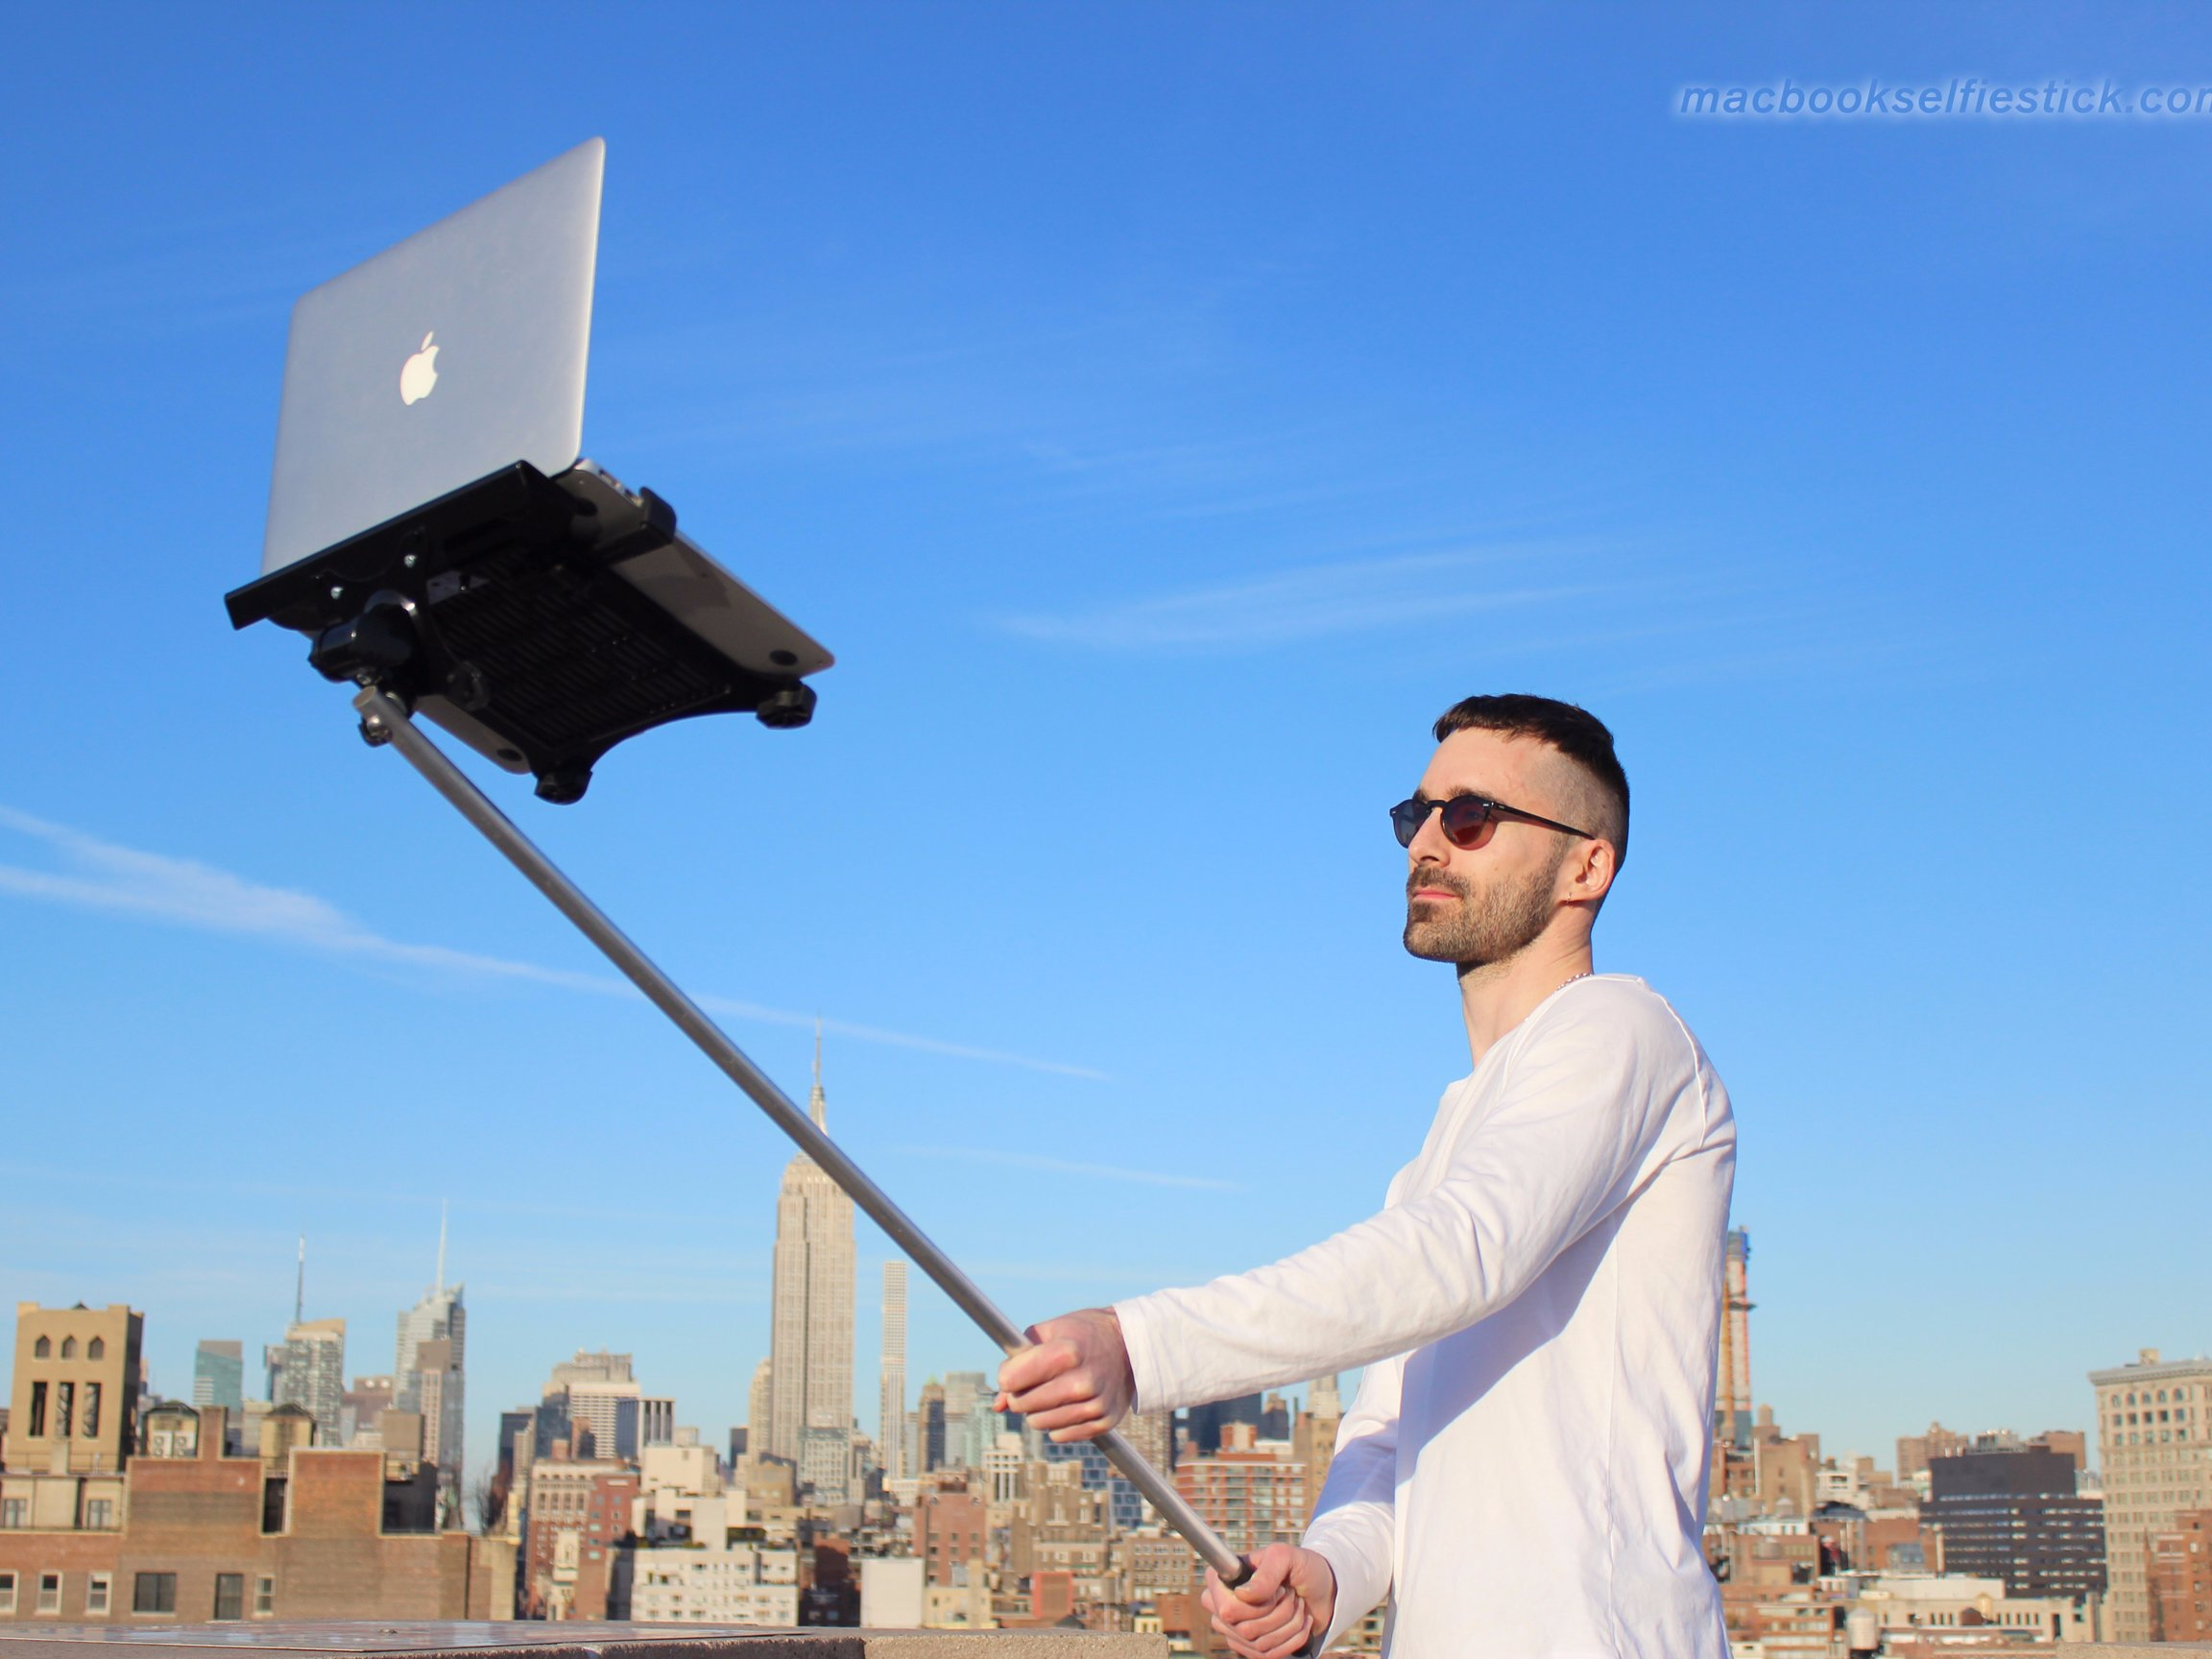 Macbook Selfie Stick Is the Tech Trend